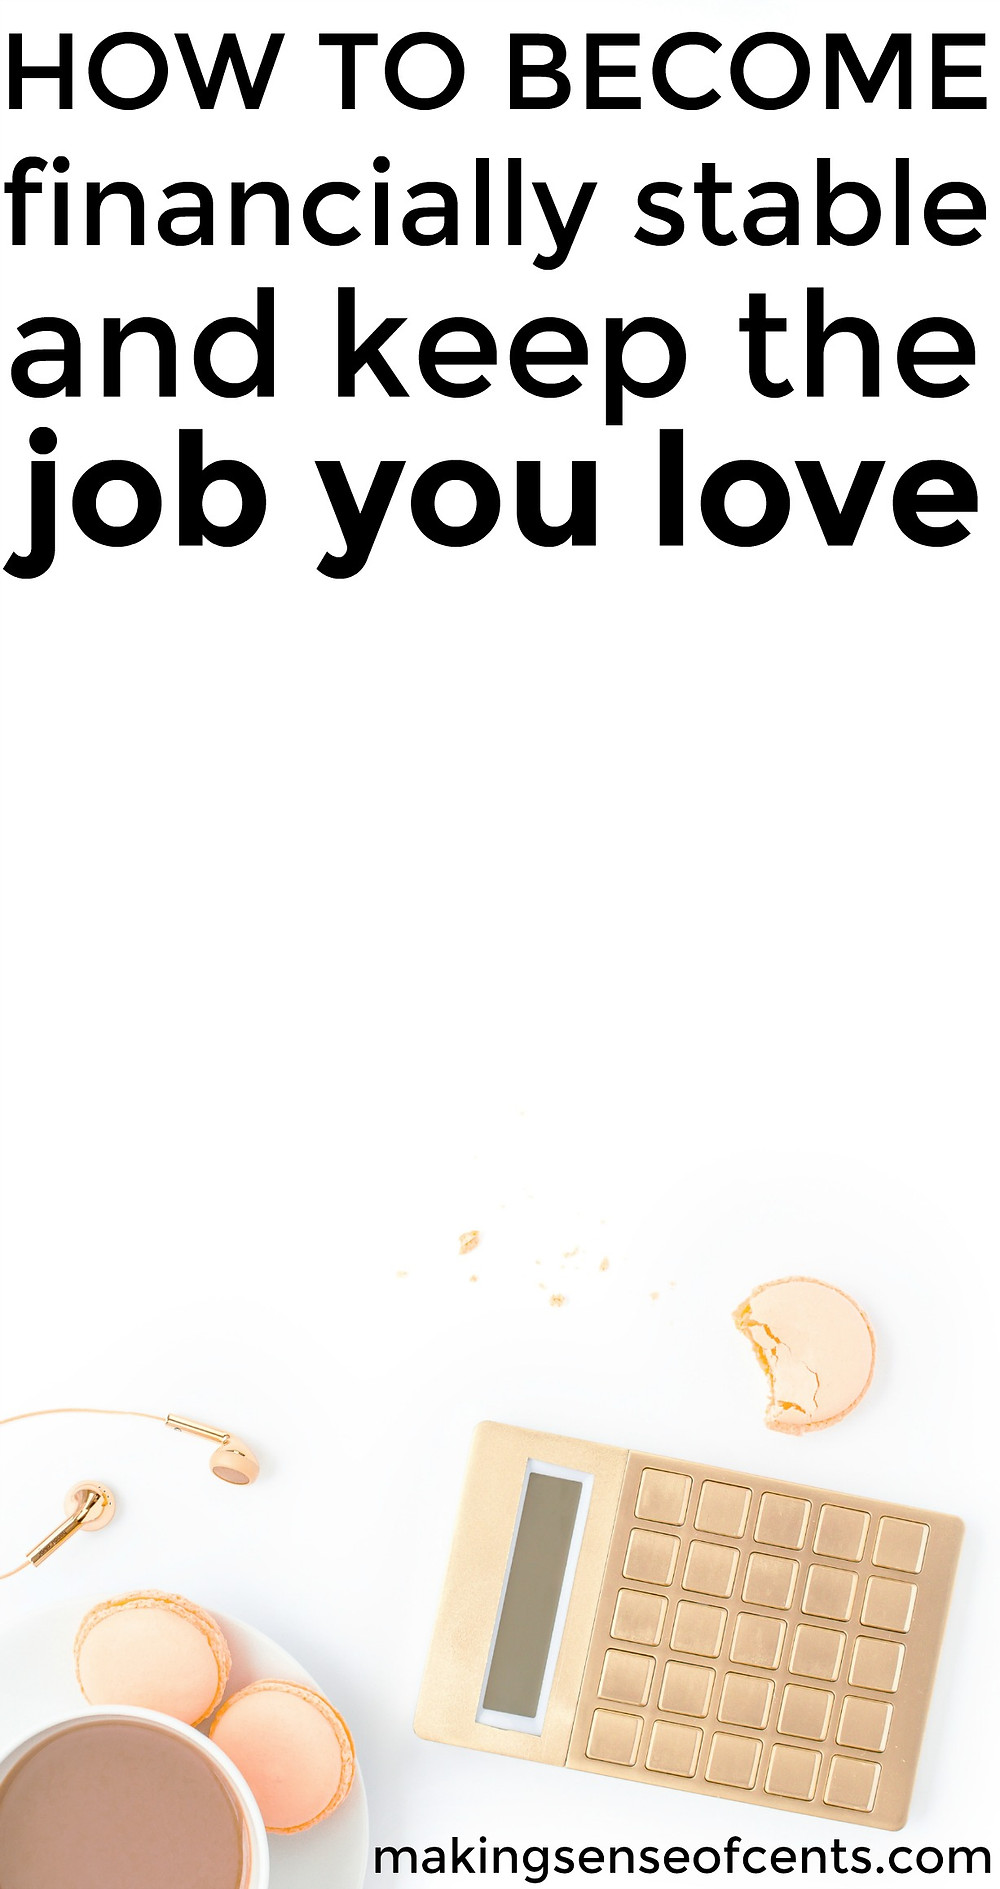 Find out how to become financially stable and keep the job you love.